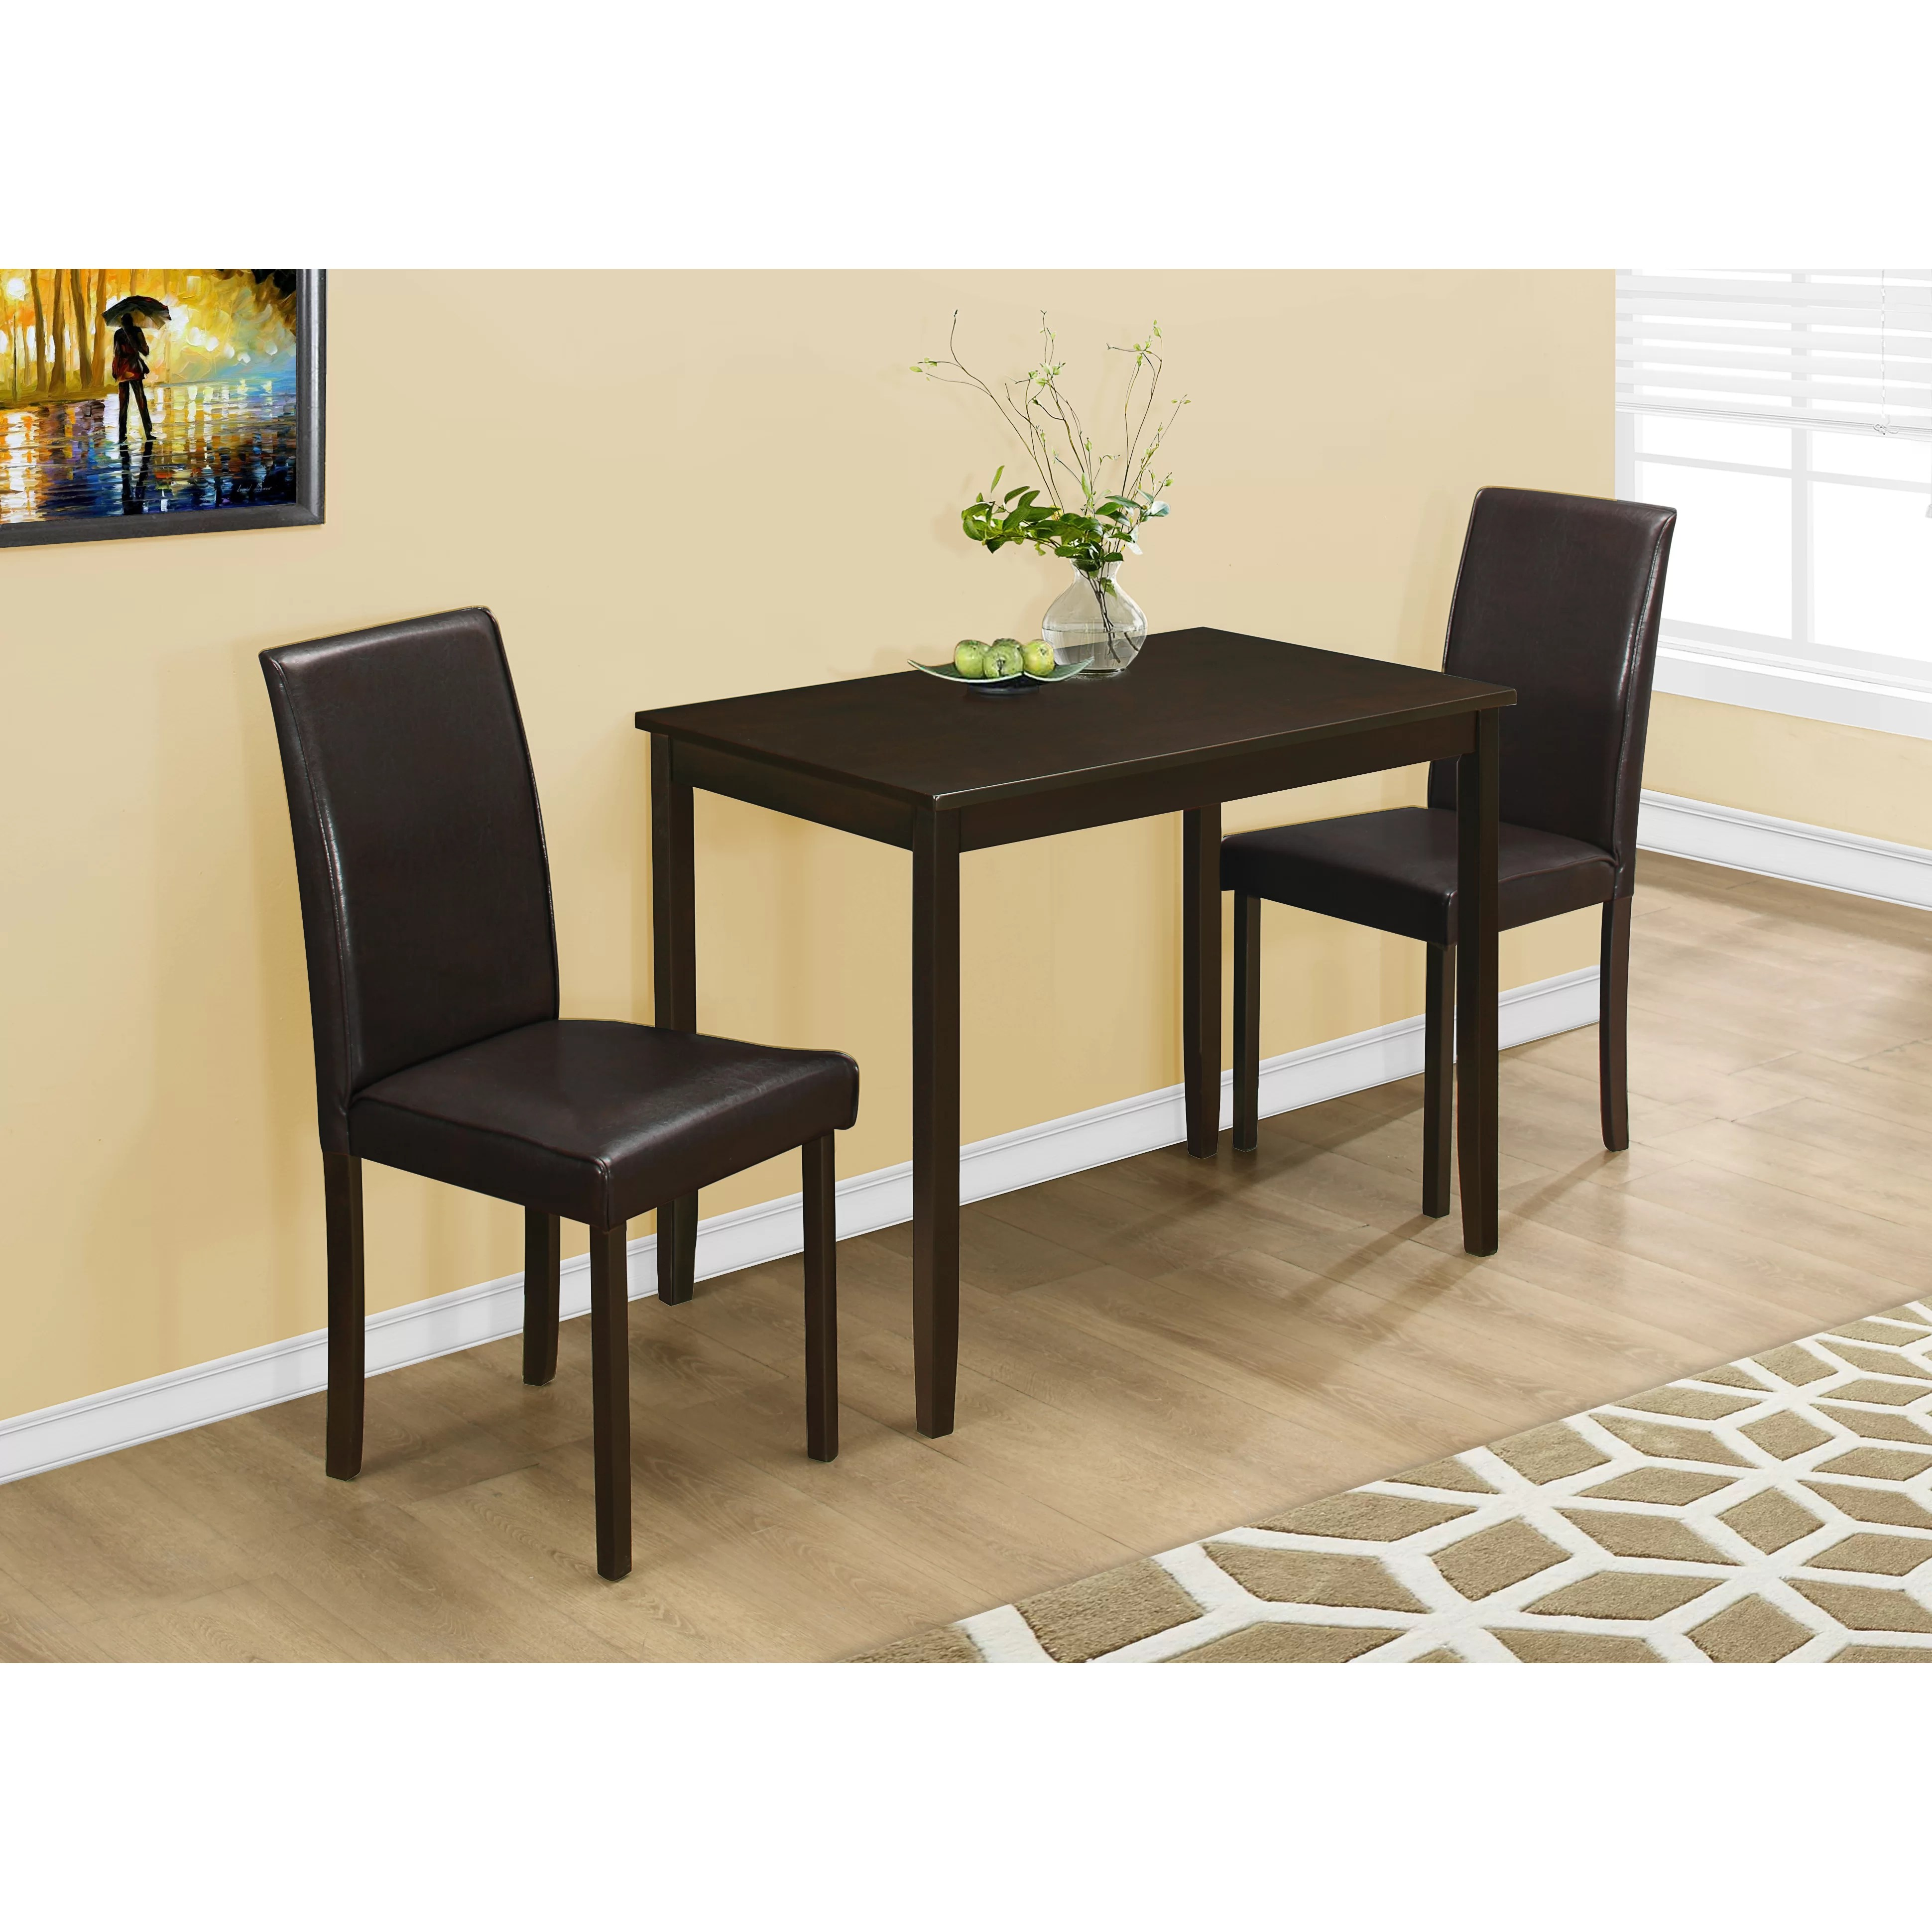 Monarch Specialties Inc 3 Piece Dining Set & Reviews